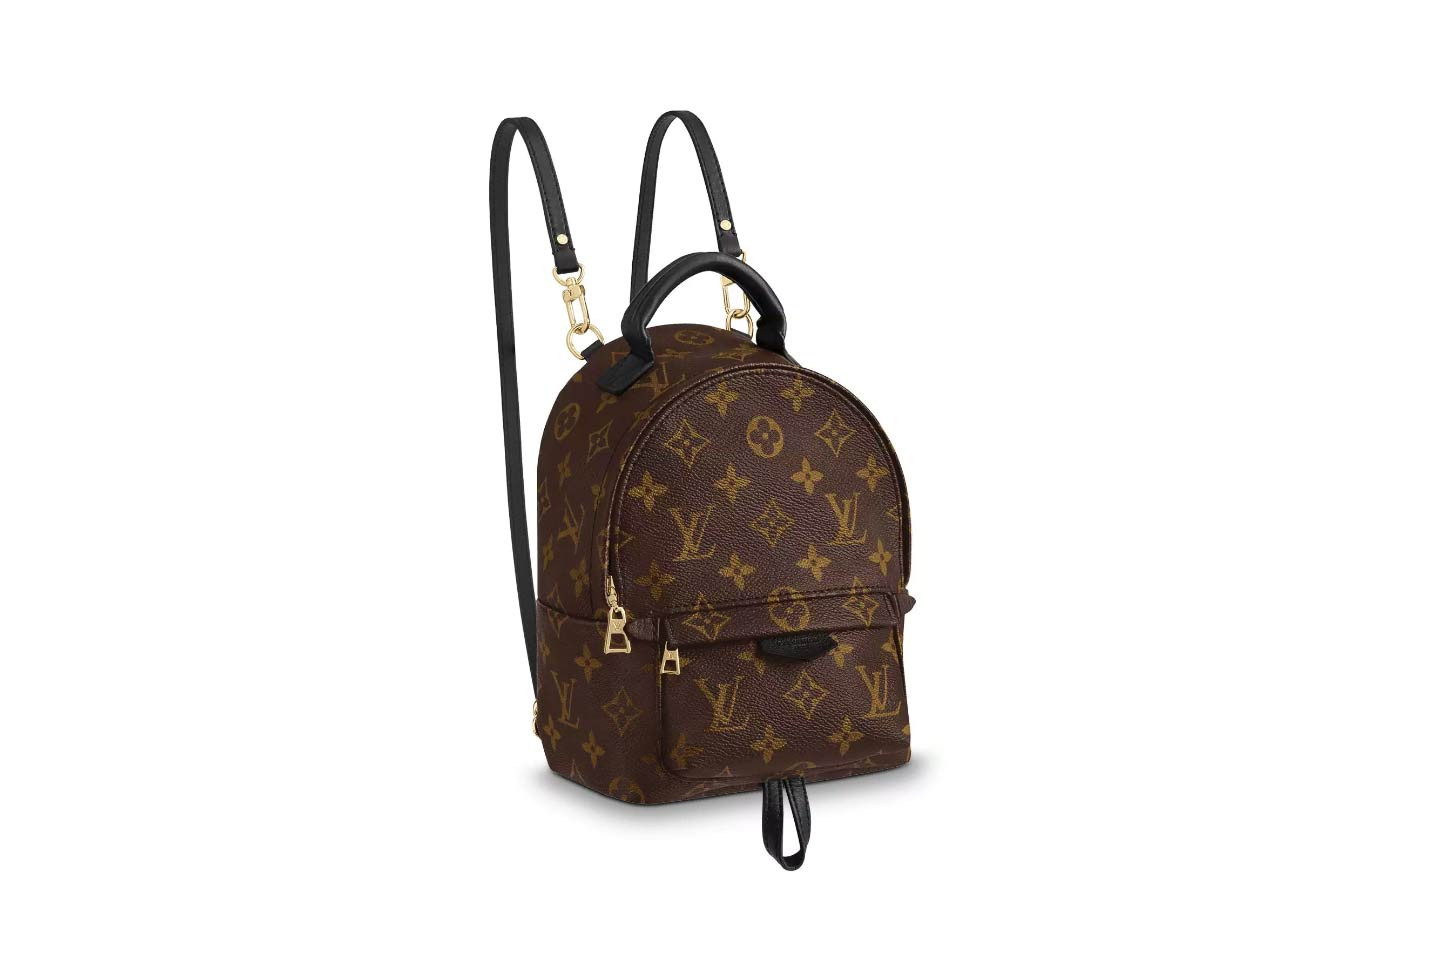 Girl Wearing Louis Vuitton Backpack New York City ae8370db2bc74